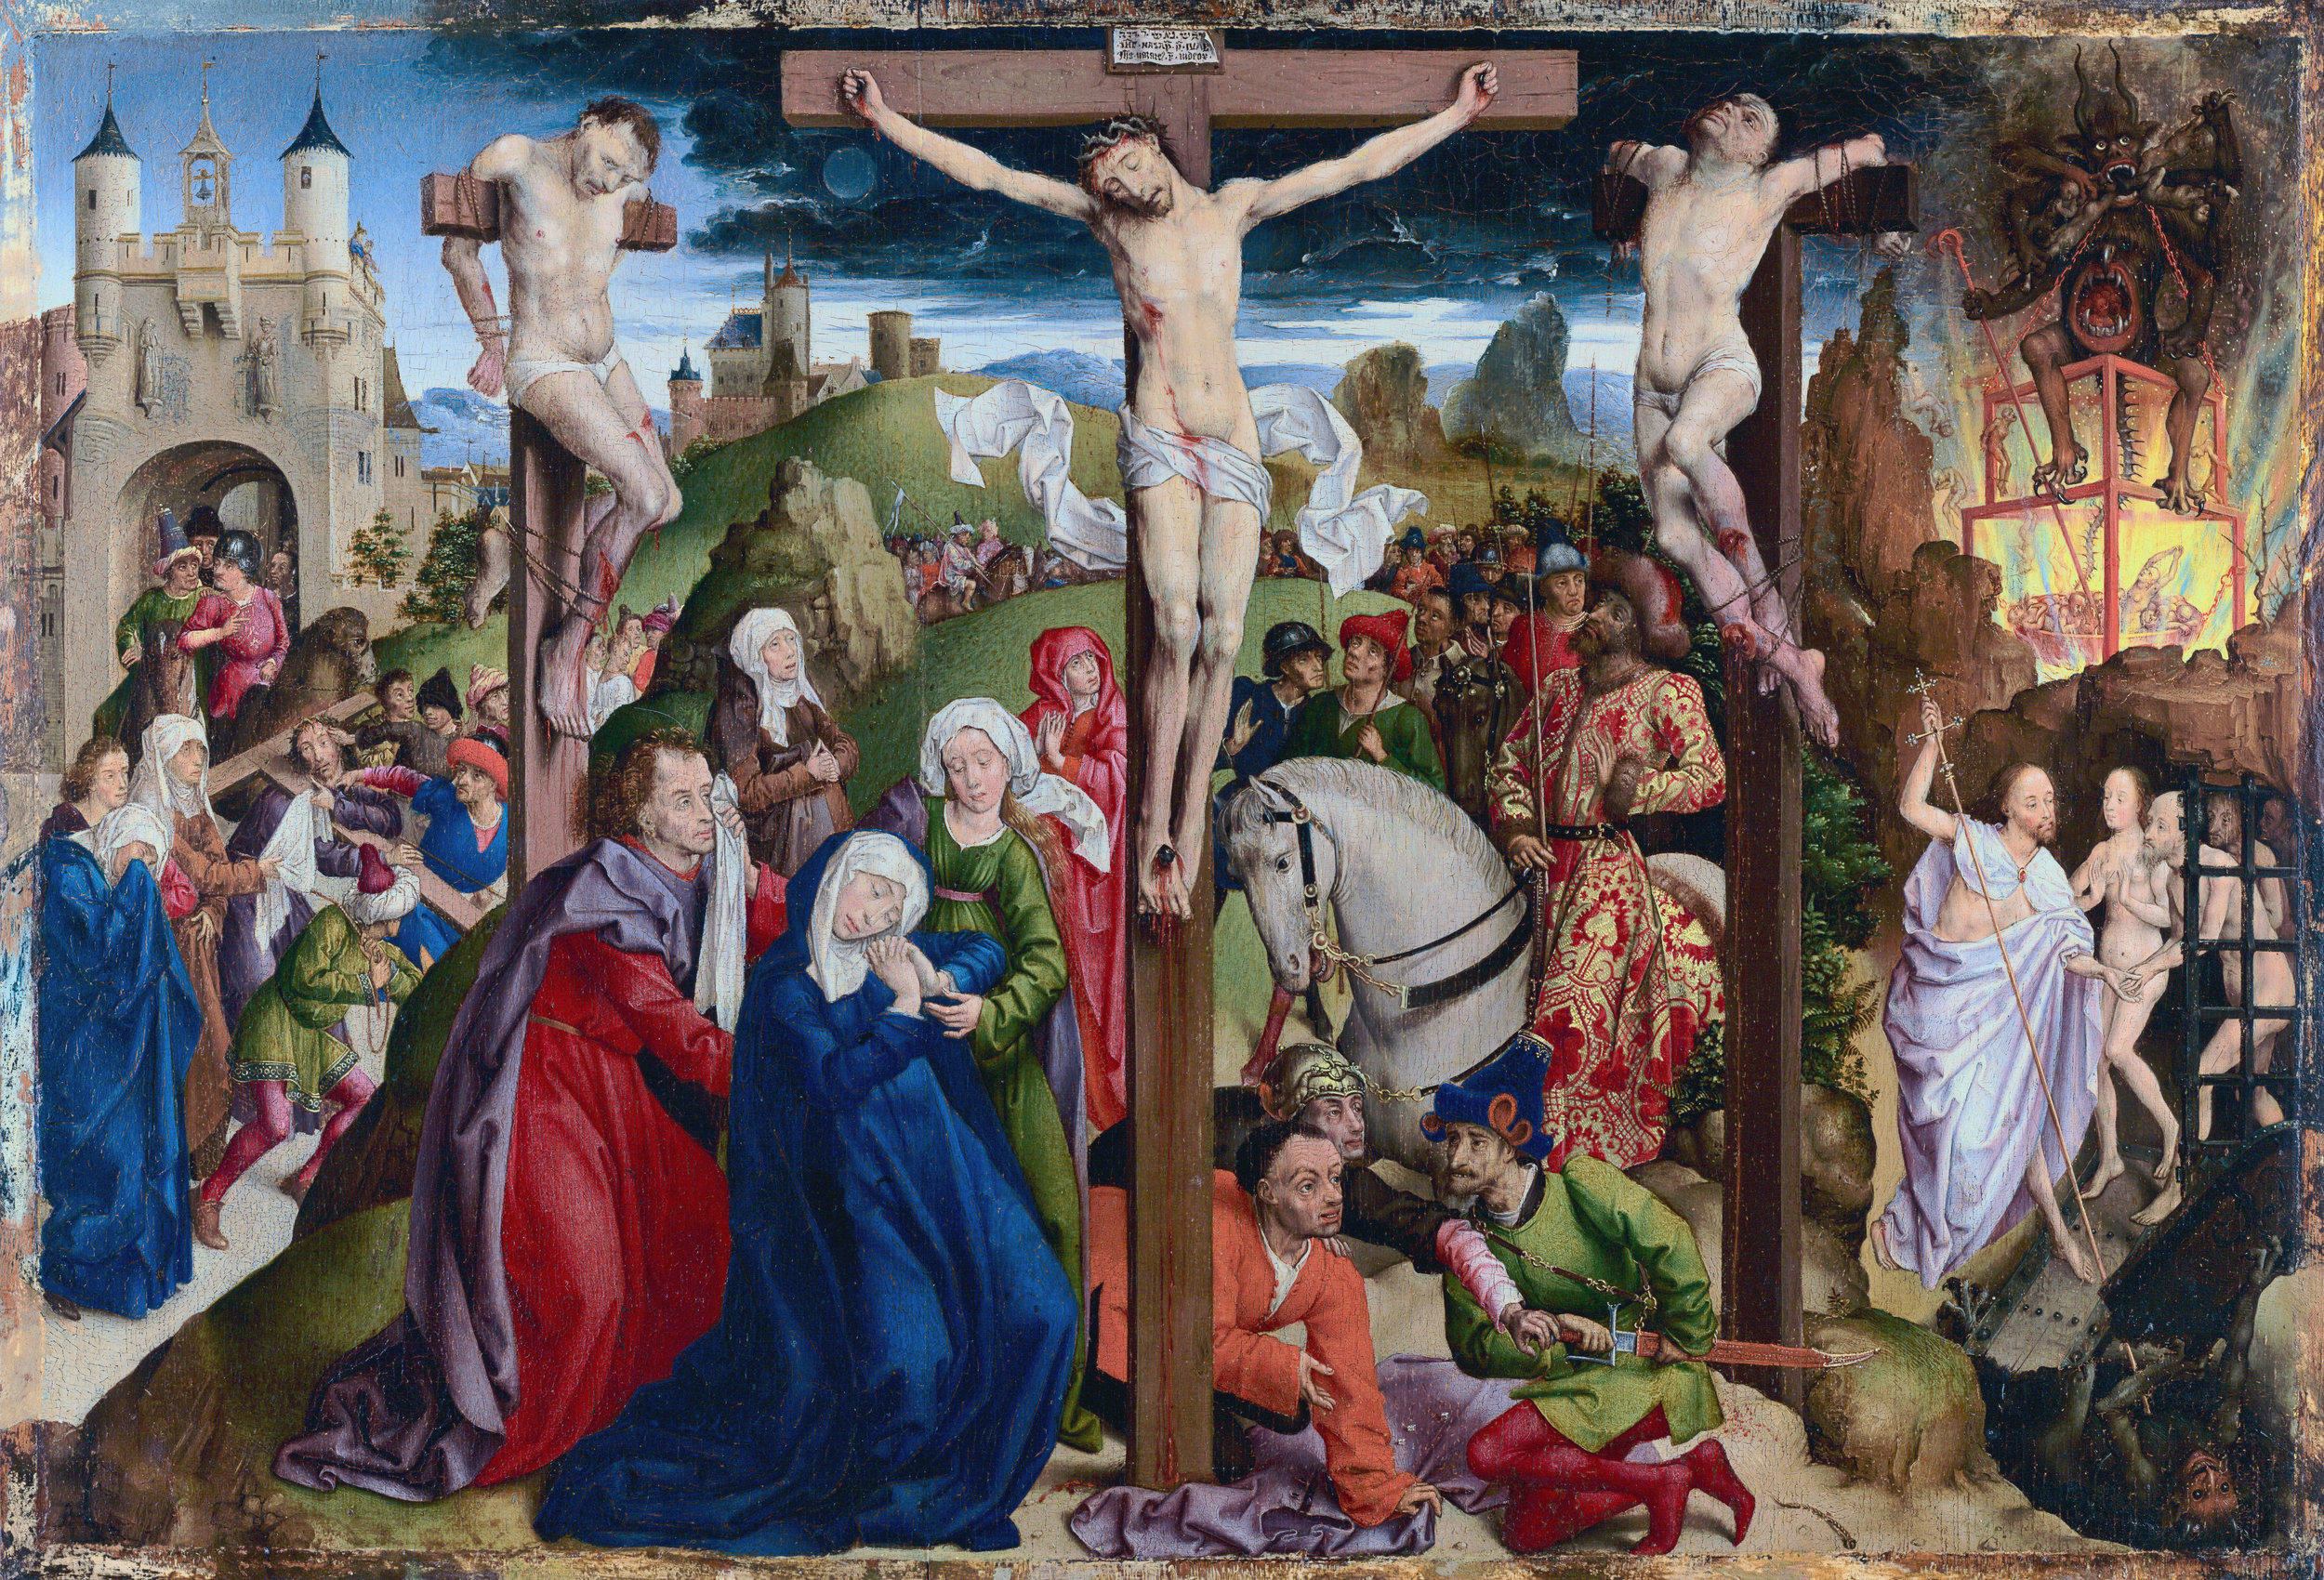 Artist:  Dreux   Budé Master, possibly André d'Ypres (French, active by 1425/26, died 1450) 1450 – artist (French)  Title:  The Crucifixion. Date:    before    1450. This work of art is in the public domain.